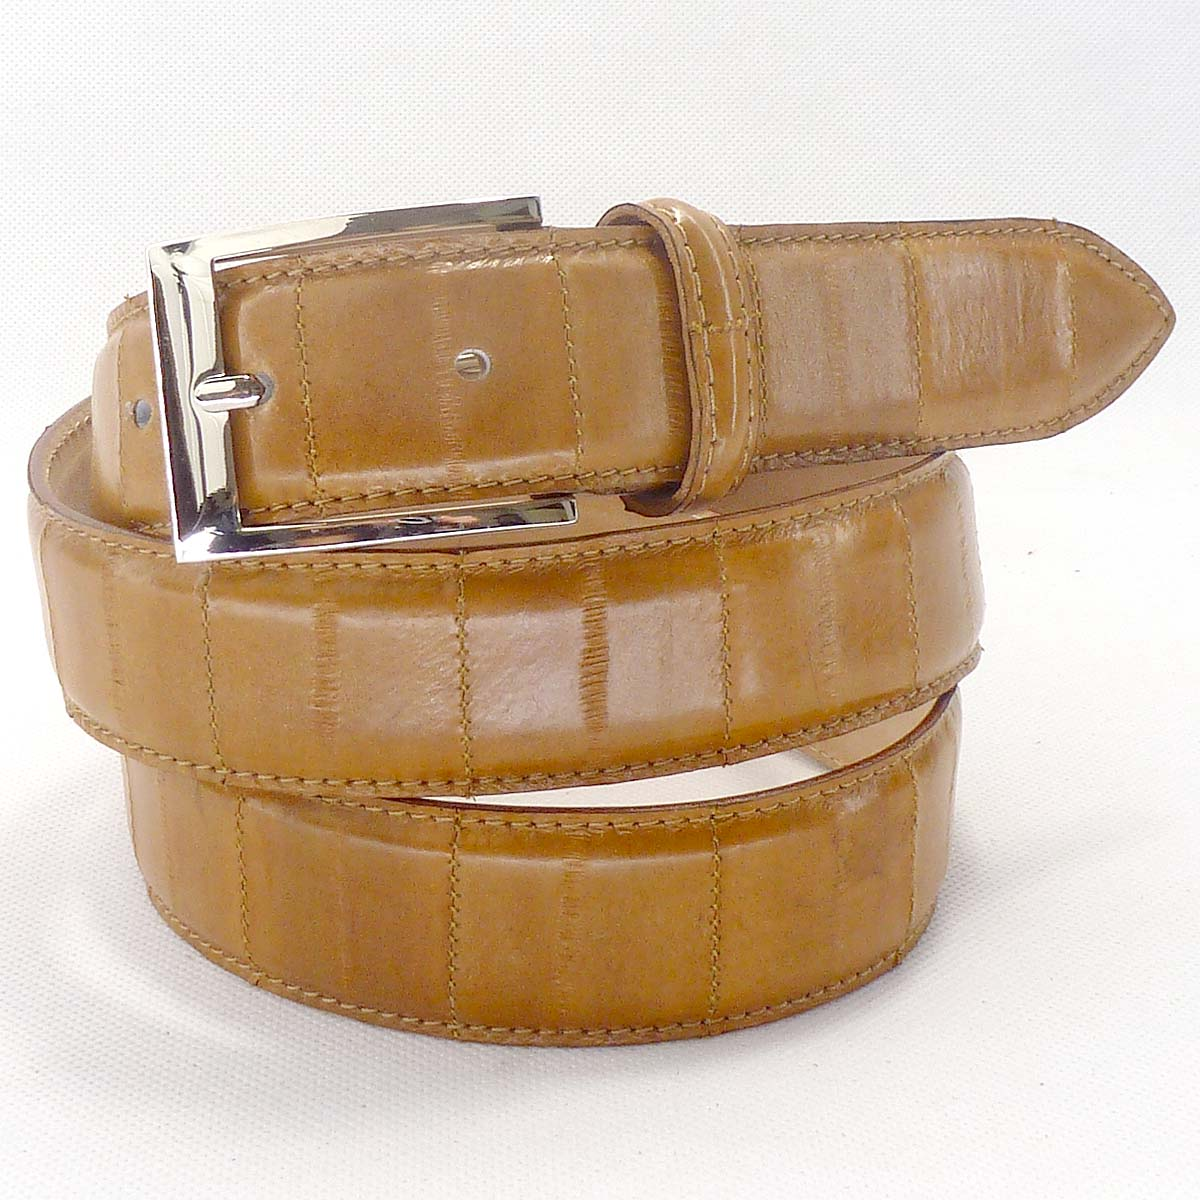 6335 real eelskin belt by Bottega Fiorentina